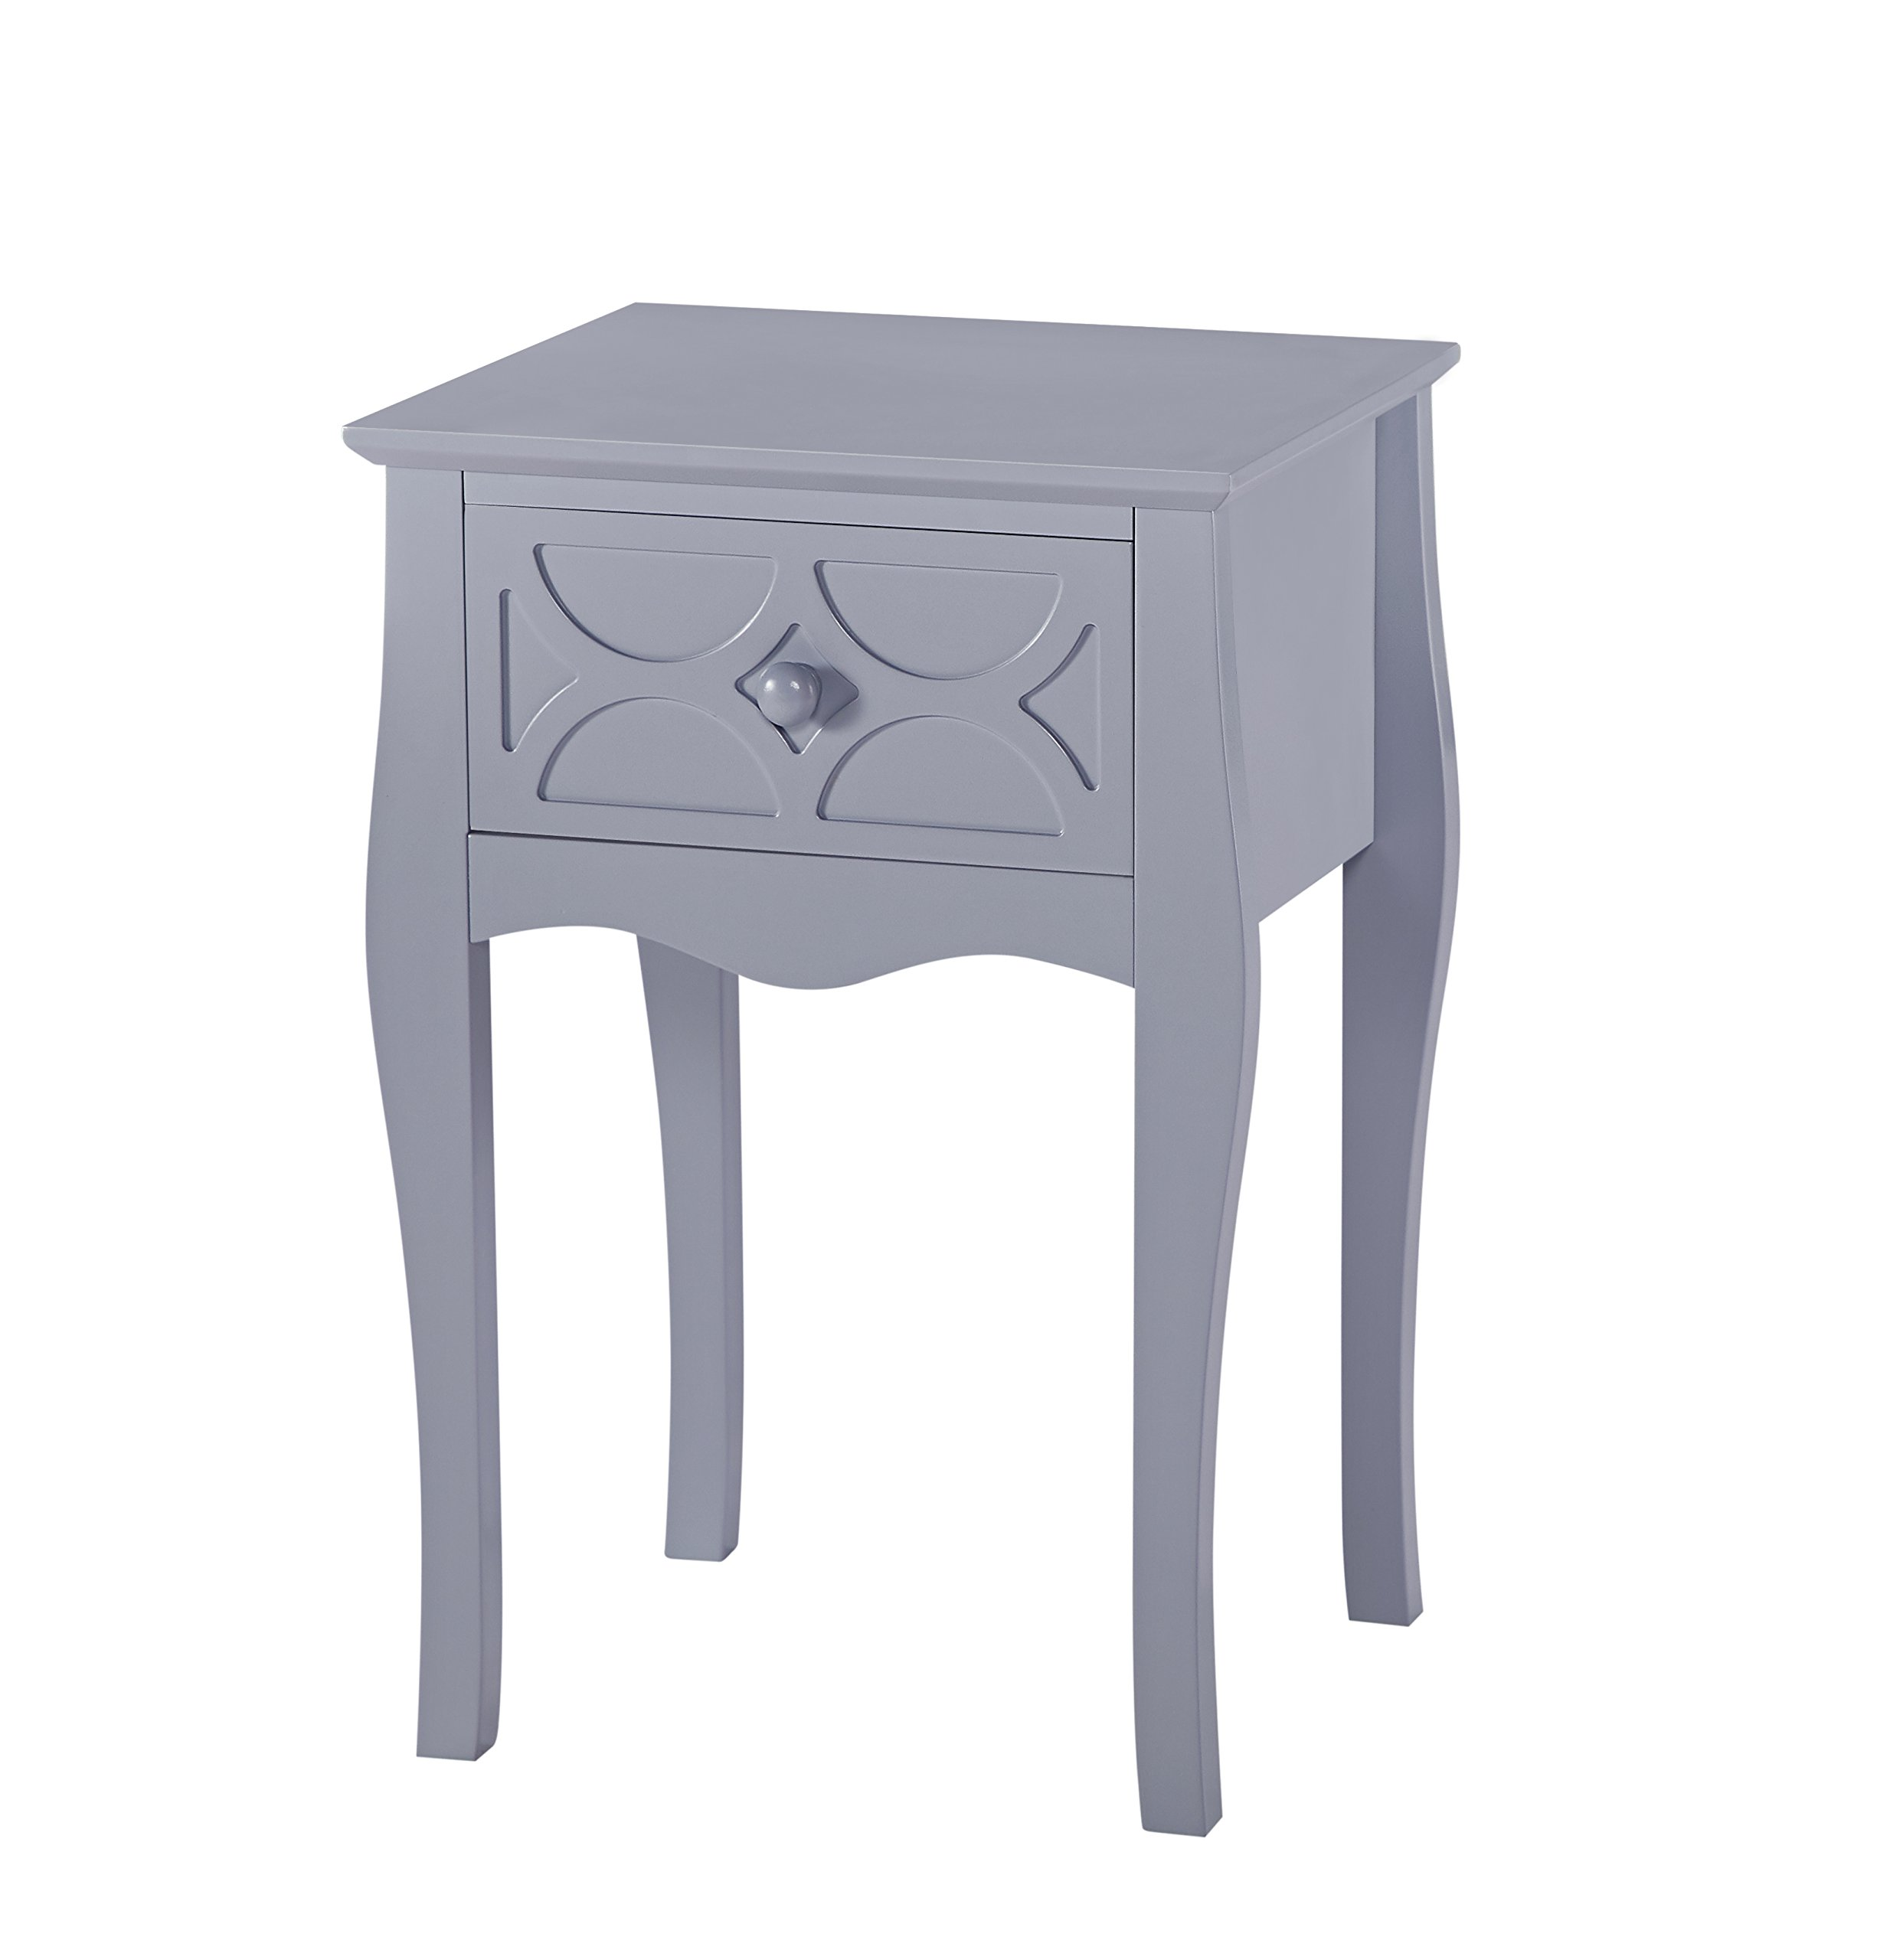 Grey Finish Checker Front Design Nightstand Side End Table with Drawer - Color: Grey Material: MDF/Hardwood Features one drawer for storage with checker pattern design on the front - living-room-furniture, living-room, end-tables - 71FmPiZnYAL -